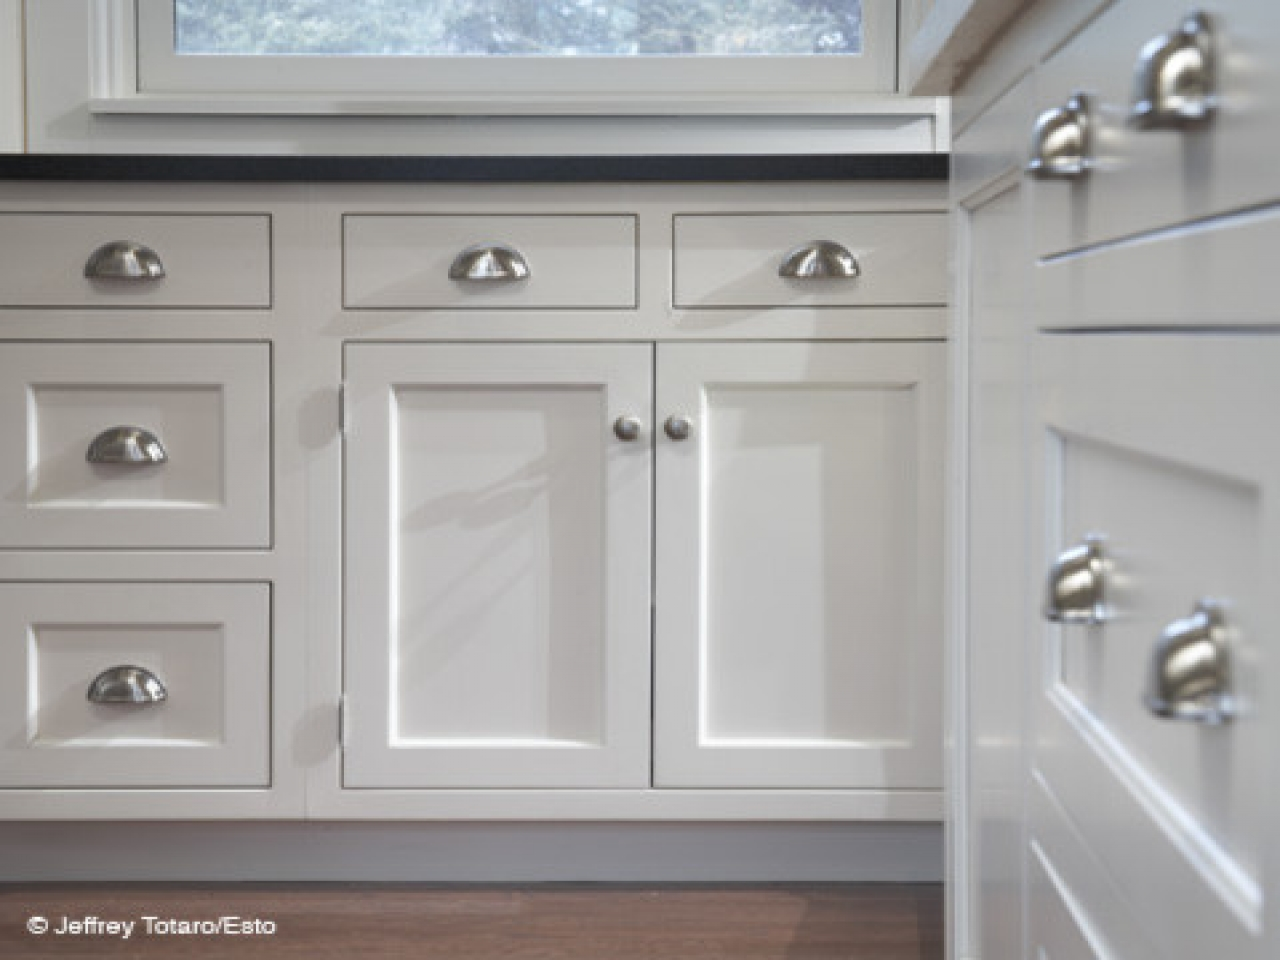 door knobs and handles for kitchen cabinets photo - 7